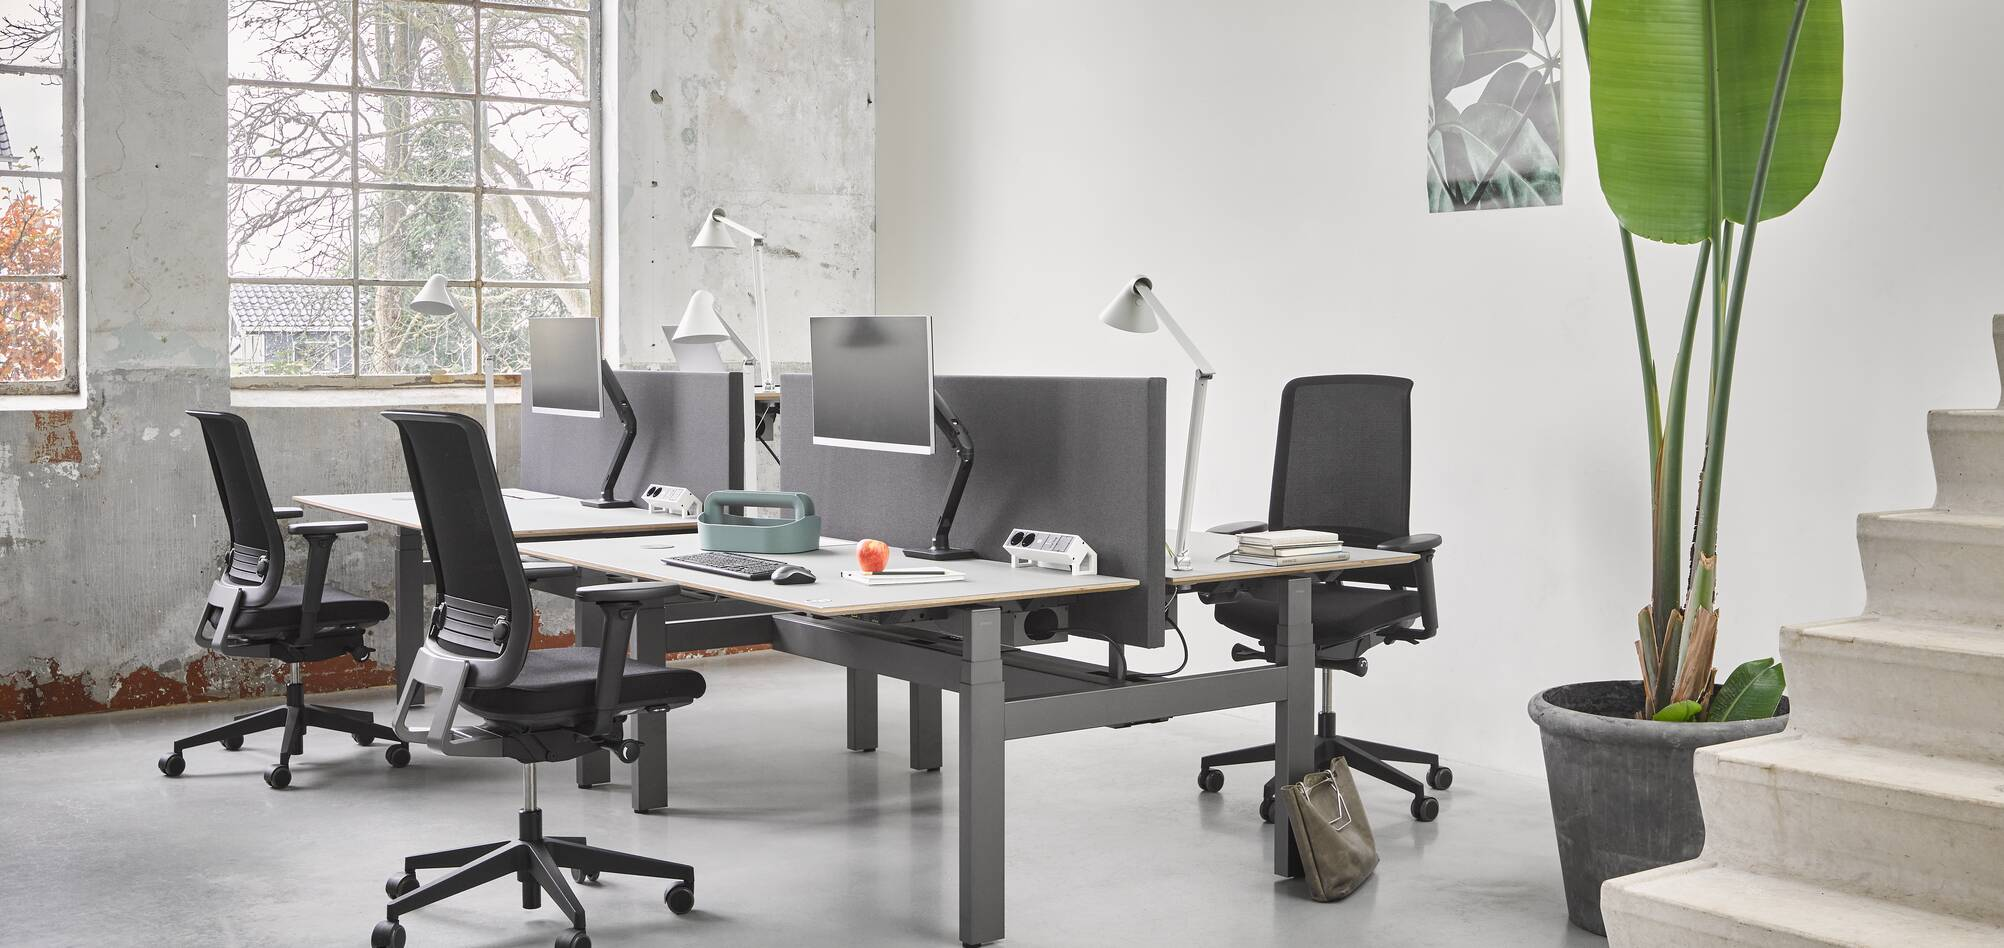 Ahrend Balance four back workstations with Ease office chairs in a Hybrid working community setting